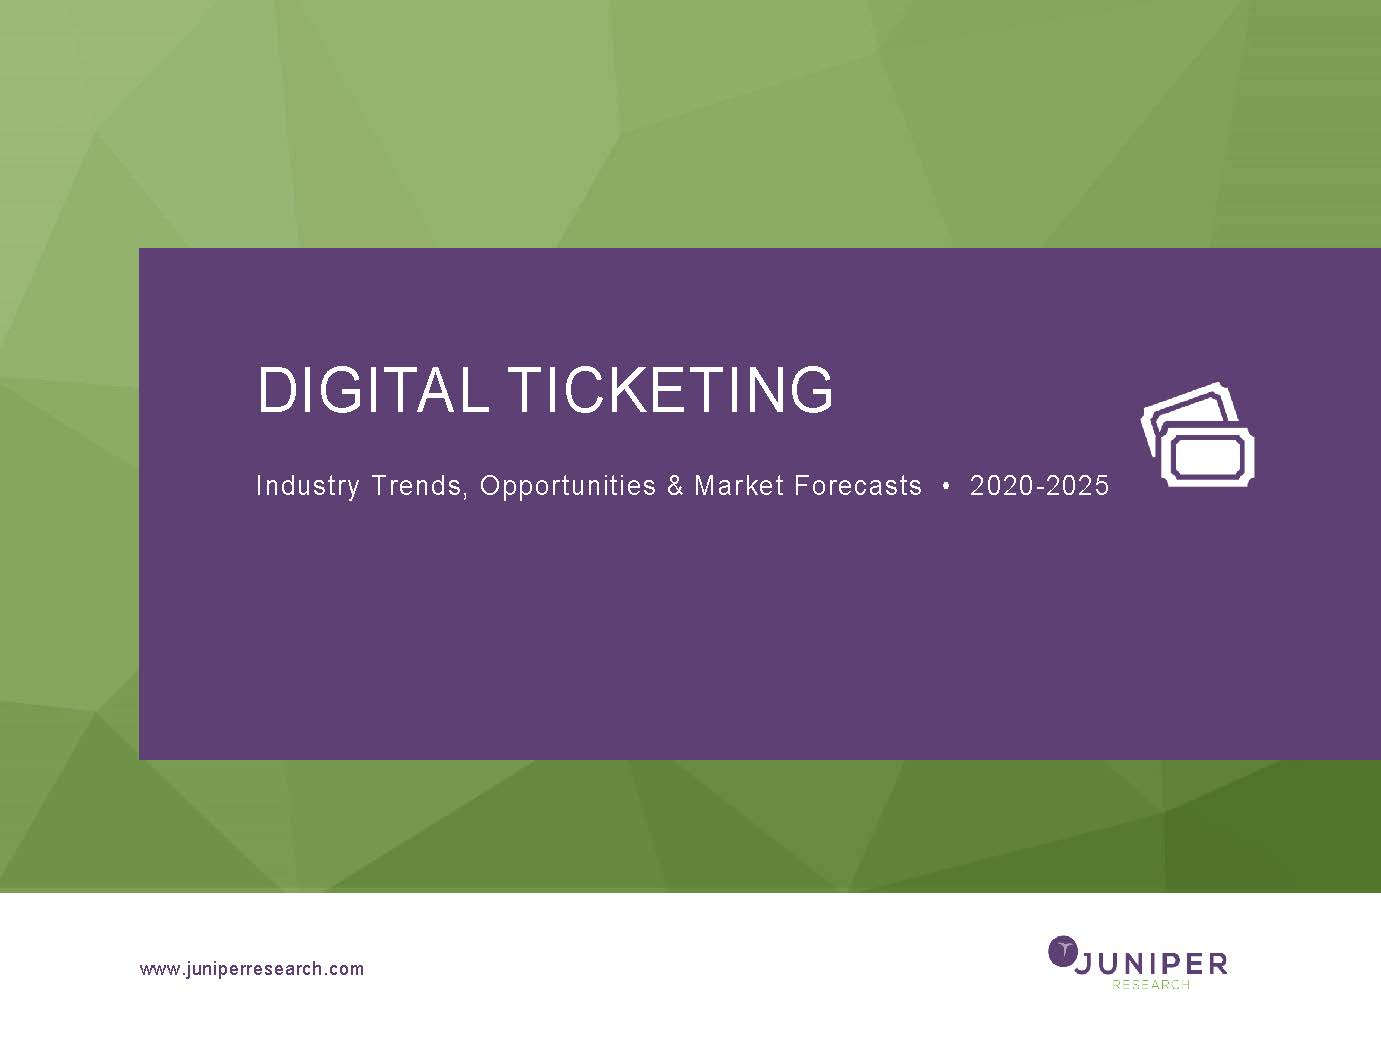 Digital Ticketing